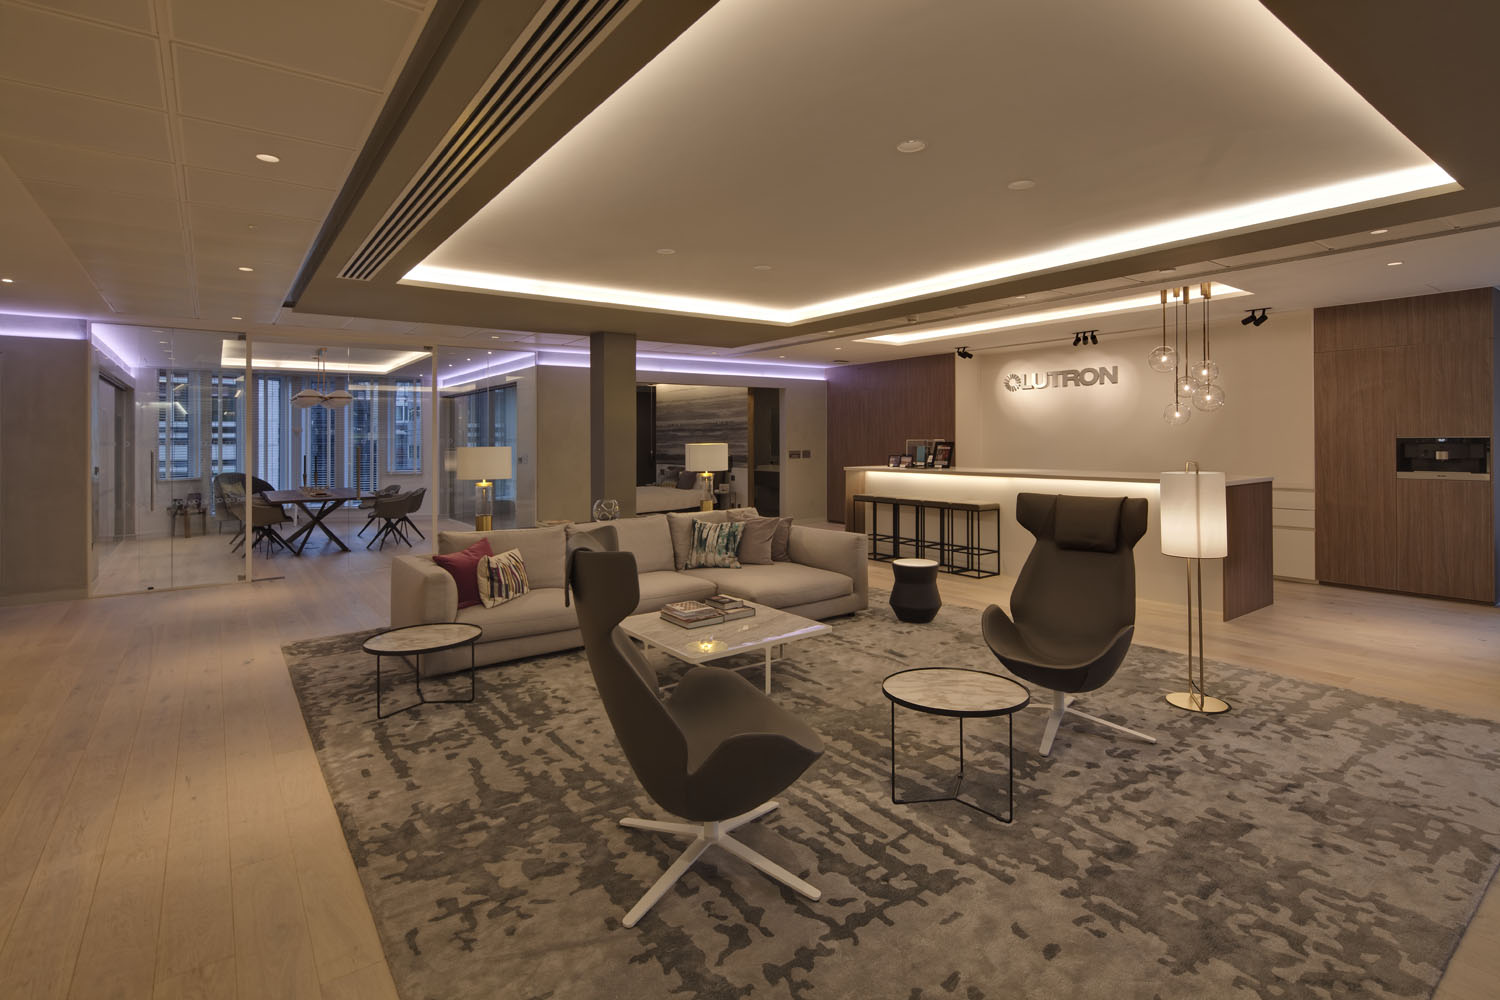 Lutron European Experience Centre, The City of London, UK